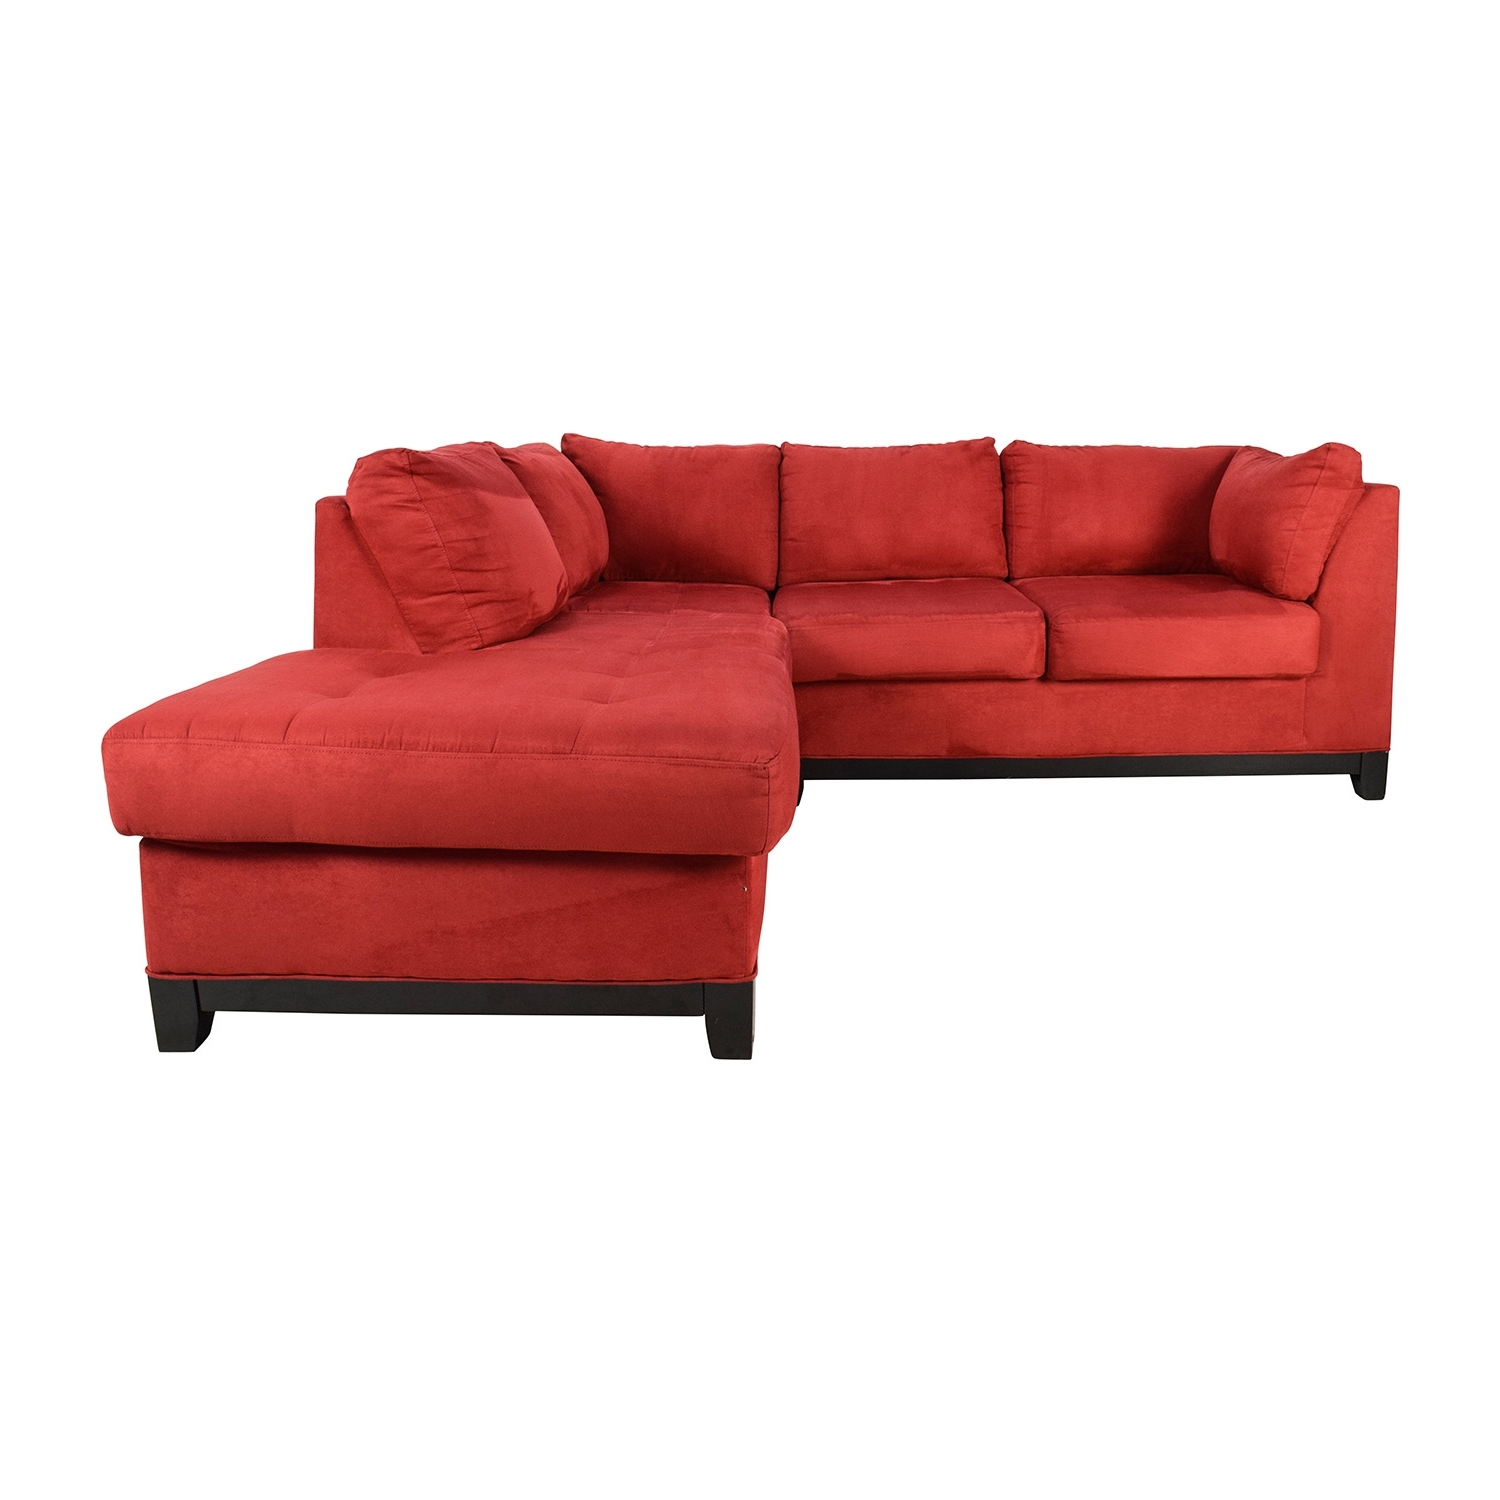 [%67% Off – Raymour And Flanigan Raymour & Flanigan Zella Red Intended For Well Known Sectional Sofas At Raymour And Flanigan|Sectional Sofas At Raymour And Flanigan With Regard To Trendy 67% Off – Raymour And Flanigan Raymour & Flanigan Zella Red|Most Recent Sectional Sofas At Raymour And Flanigan With Regard To 67% Off – Raymour And Flanigan Raymour & Flanigan Zella Red|Recent 67% Off – Raymour And Flanigan Raymour & Flanigan Zella Red In Sectional Sofas At Raymour And Flanigan%] (View 5 of 15)